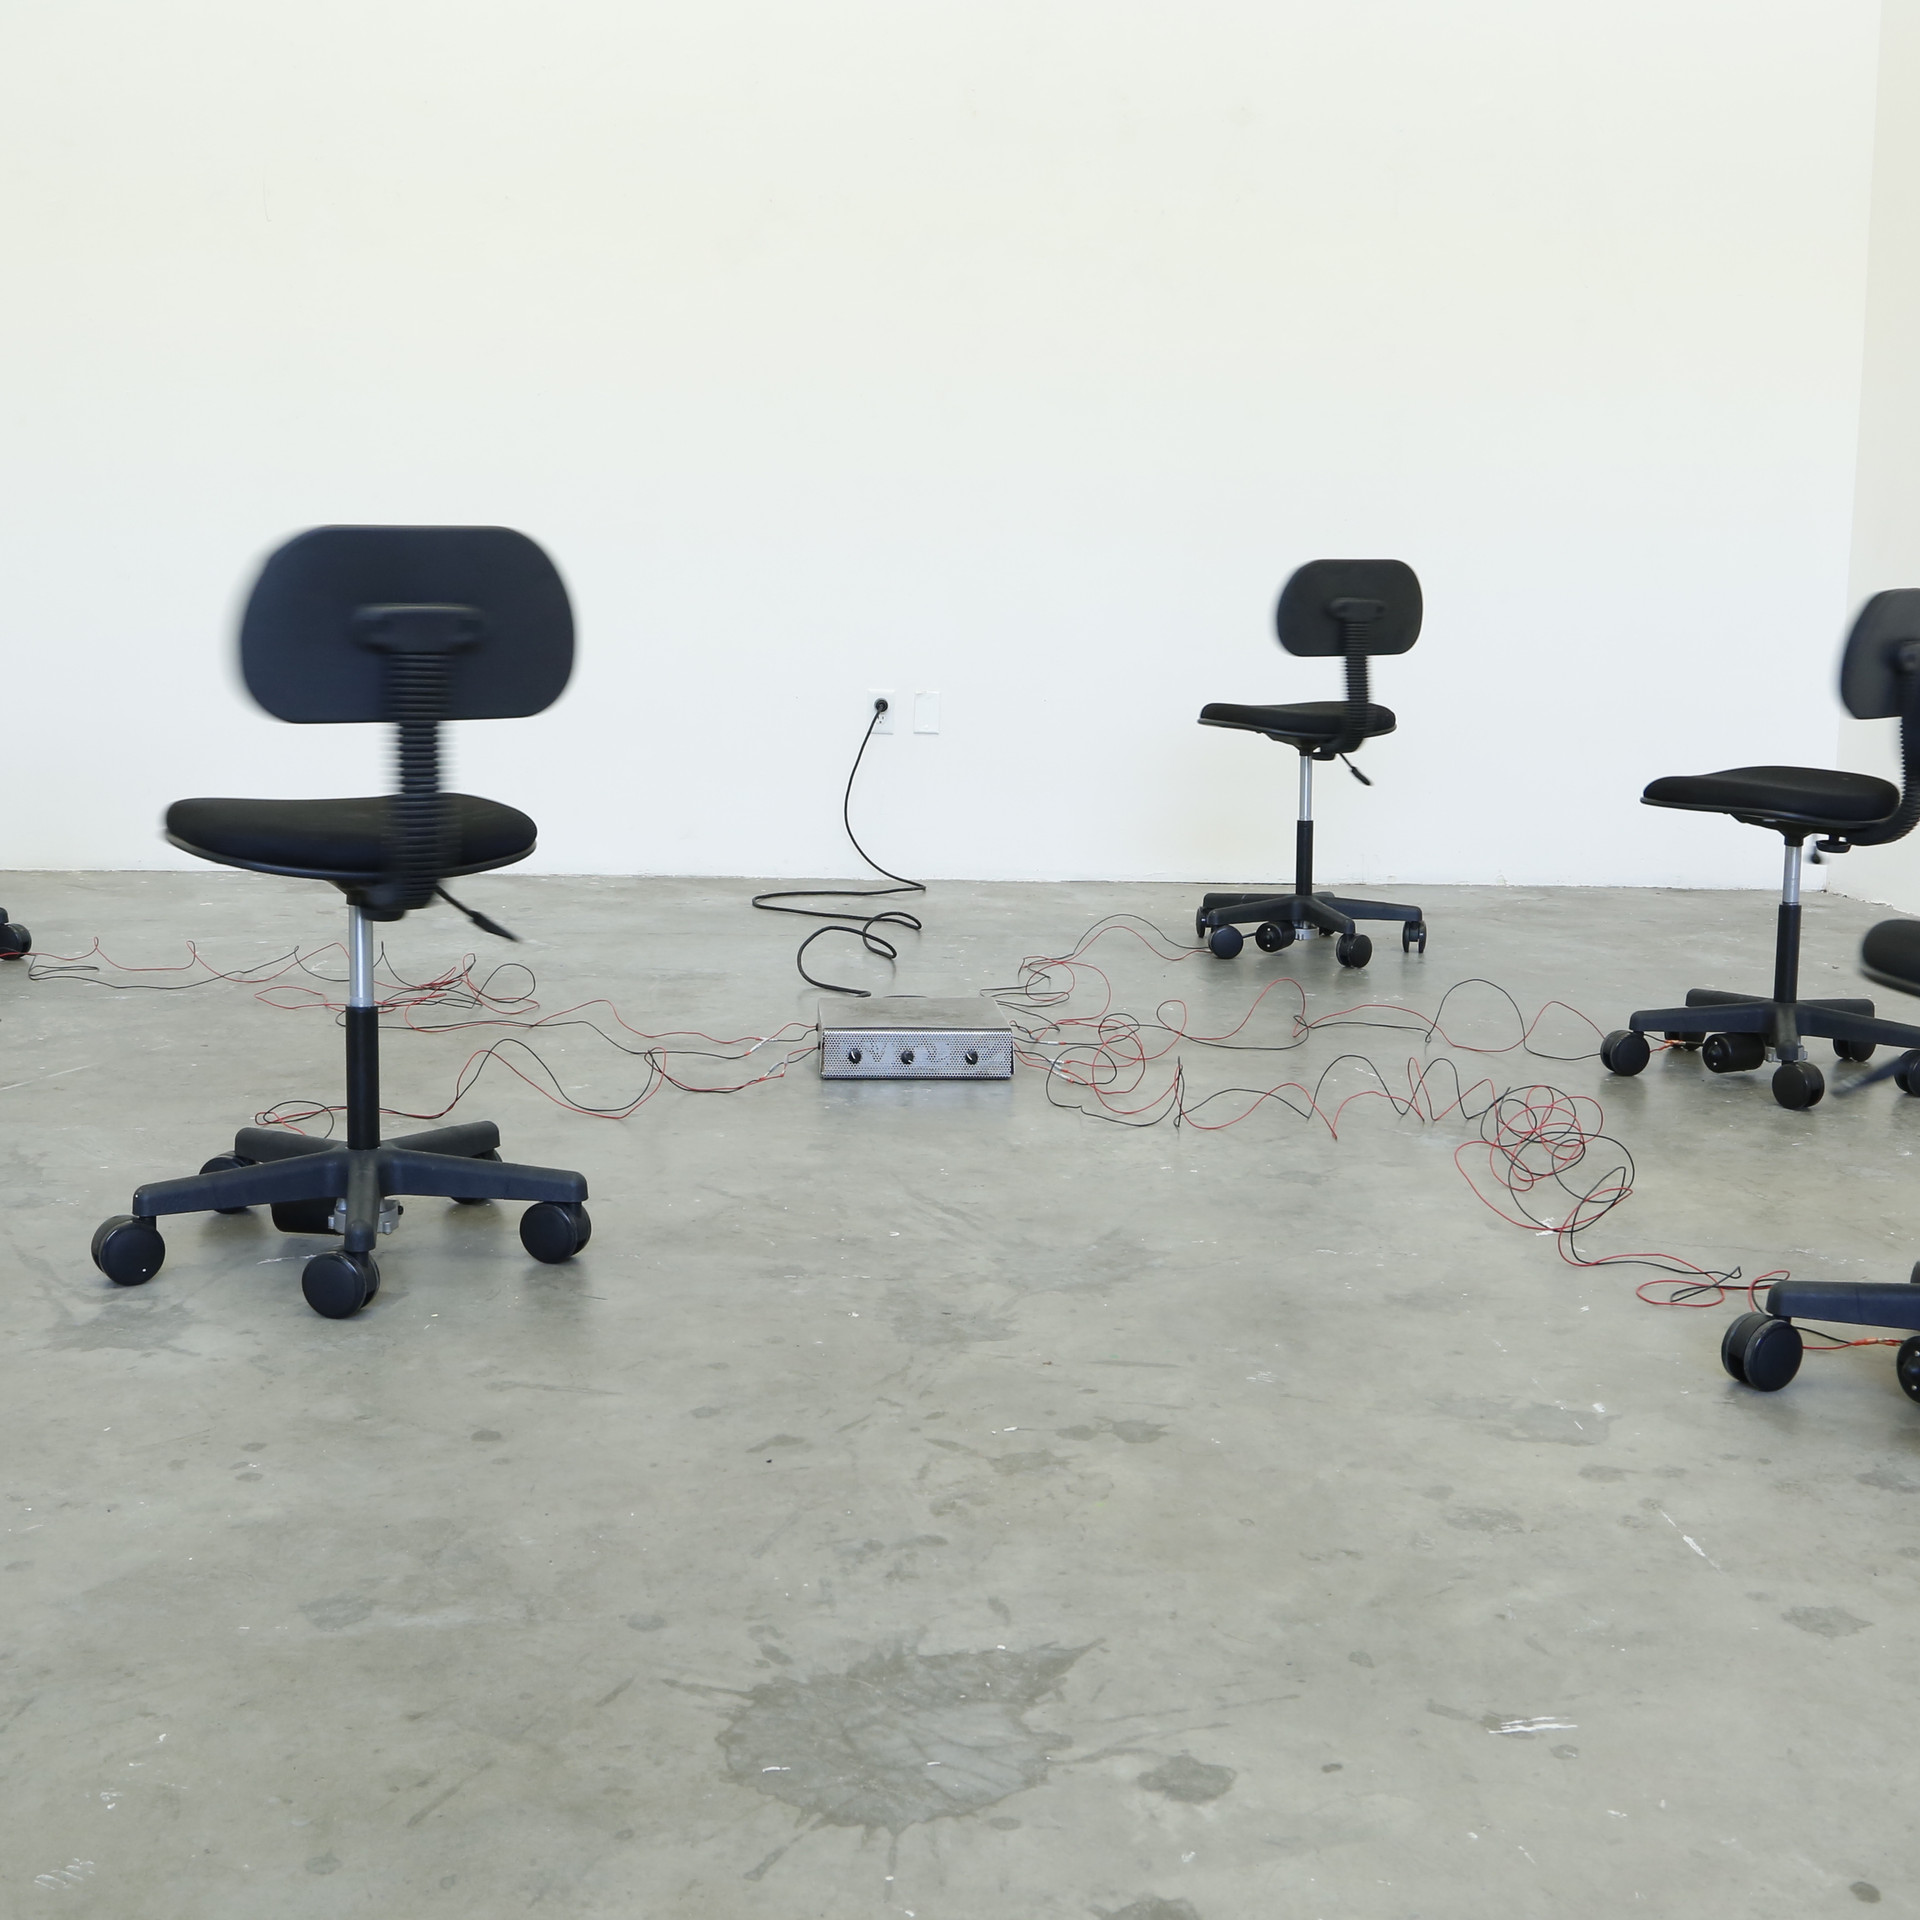 rotating chairs